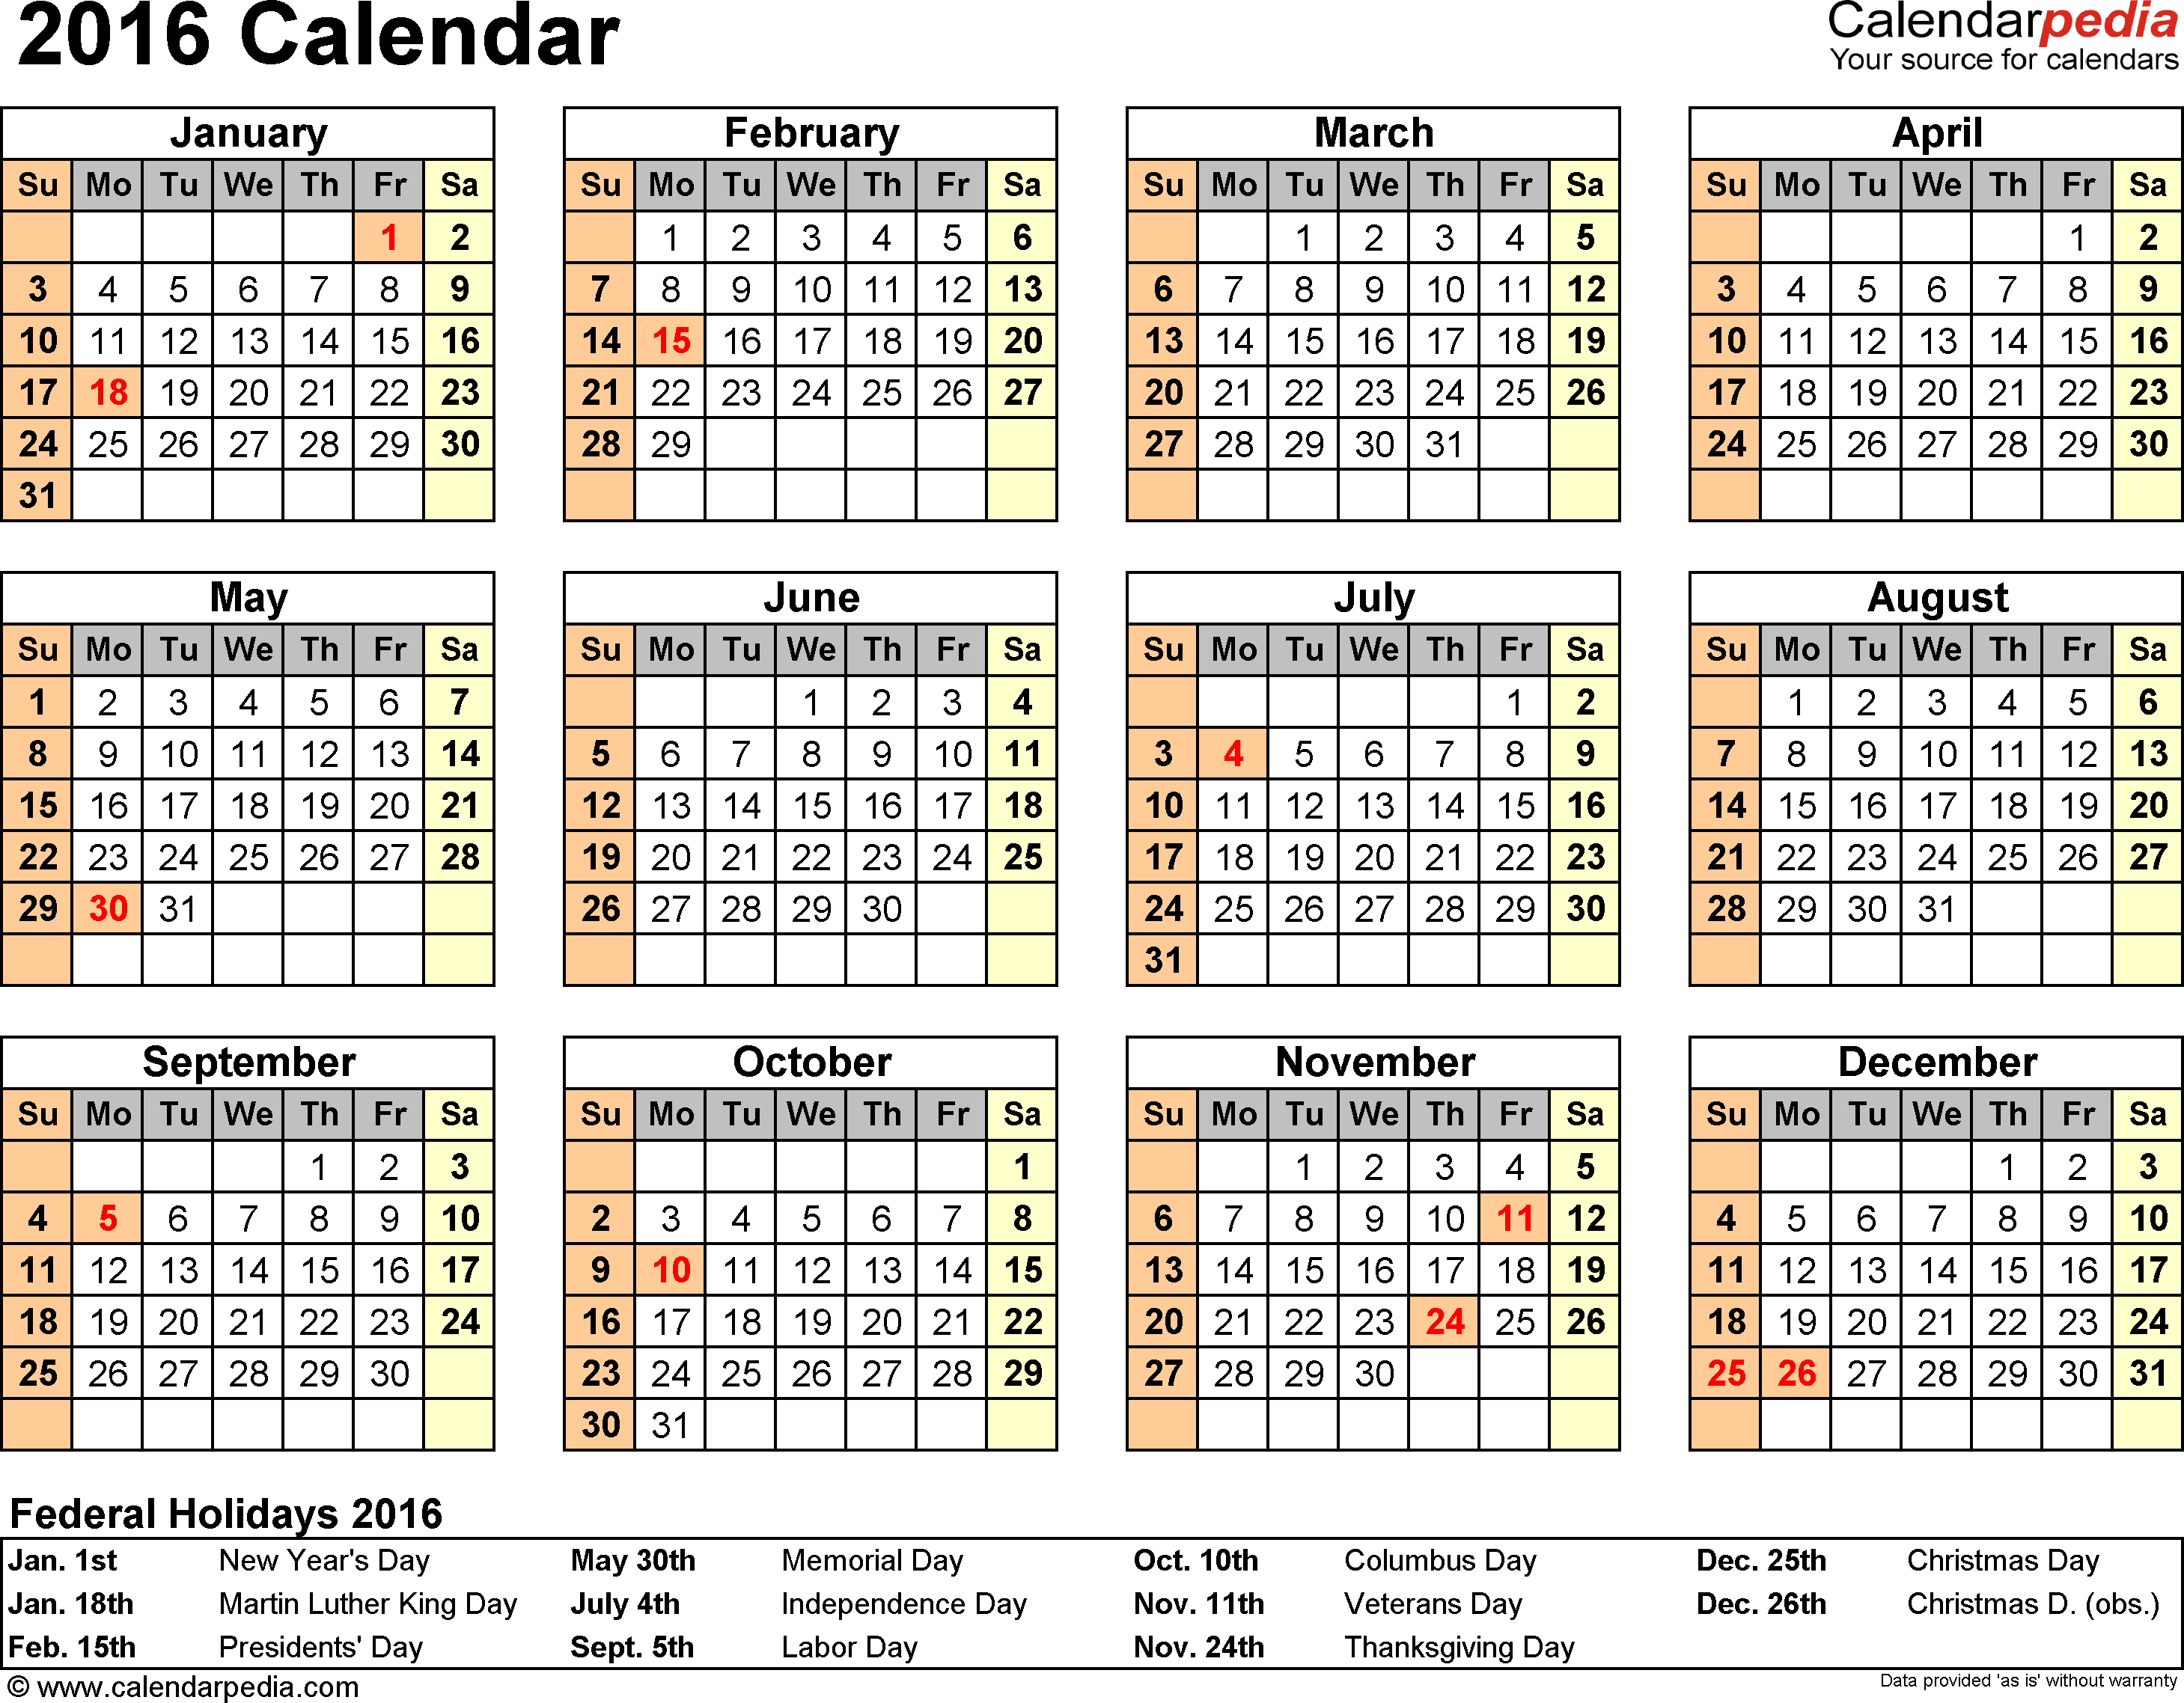 Template 8: 2016 Calendar for Excel, year at a glance, 1 page, landscape orientation